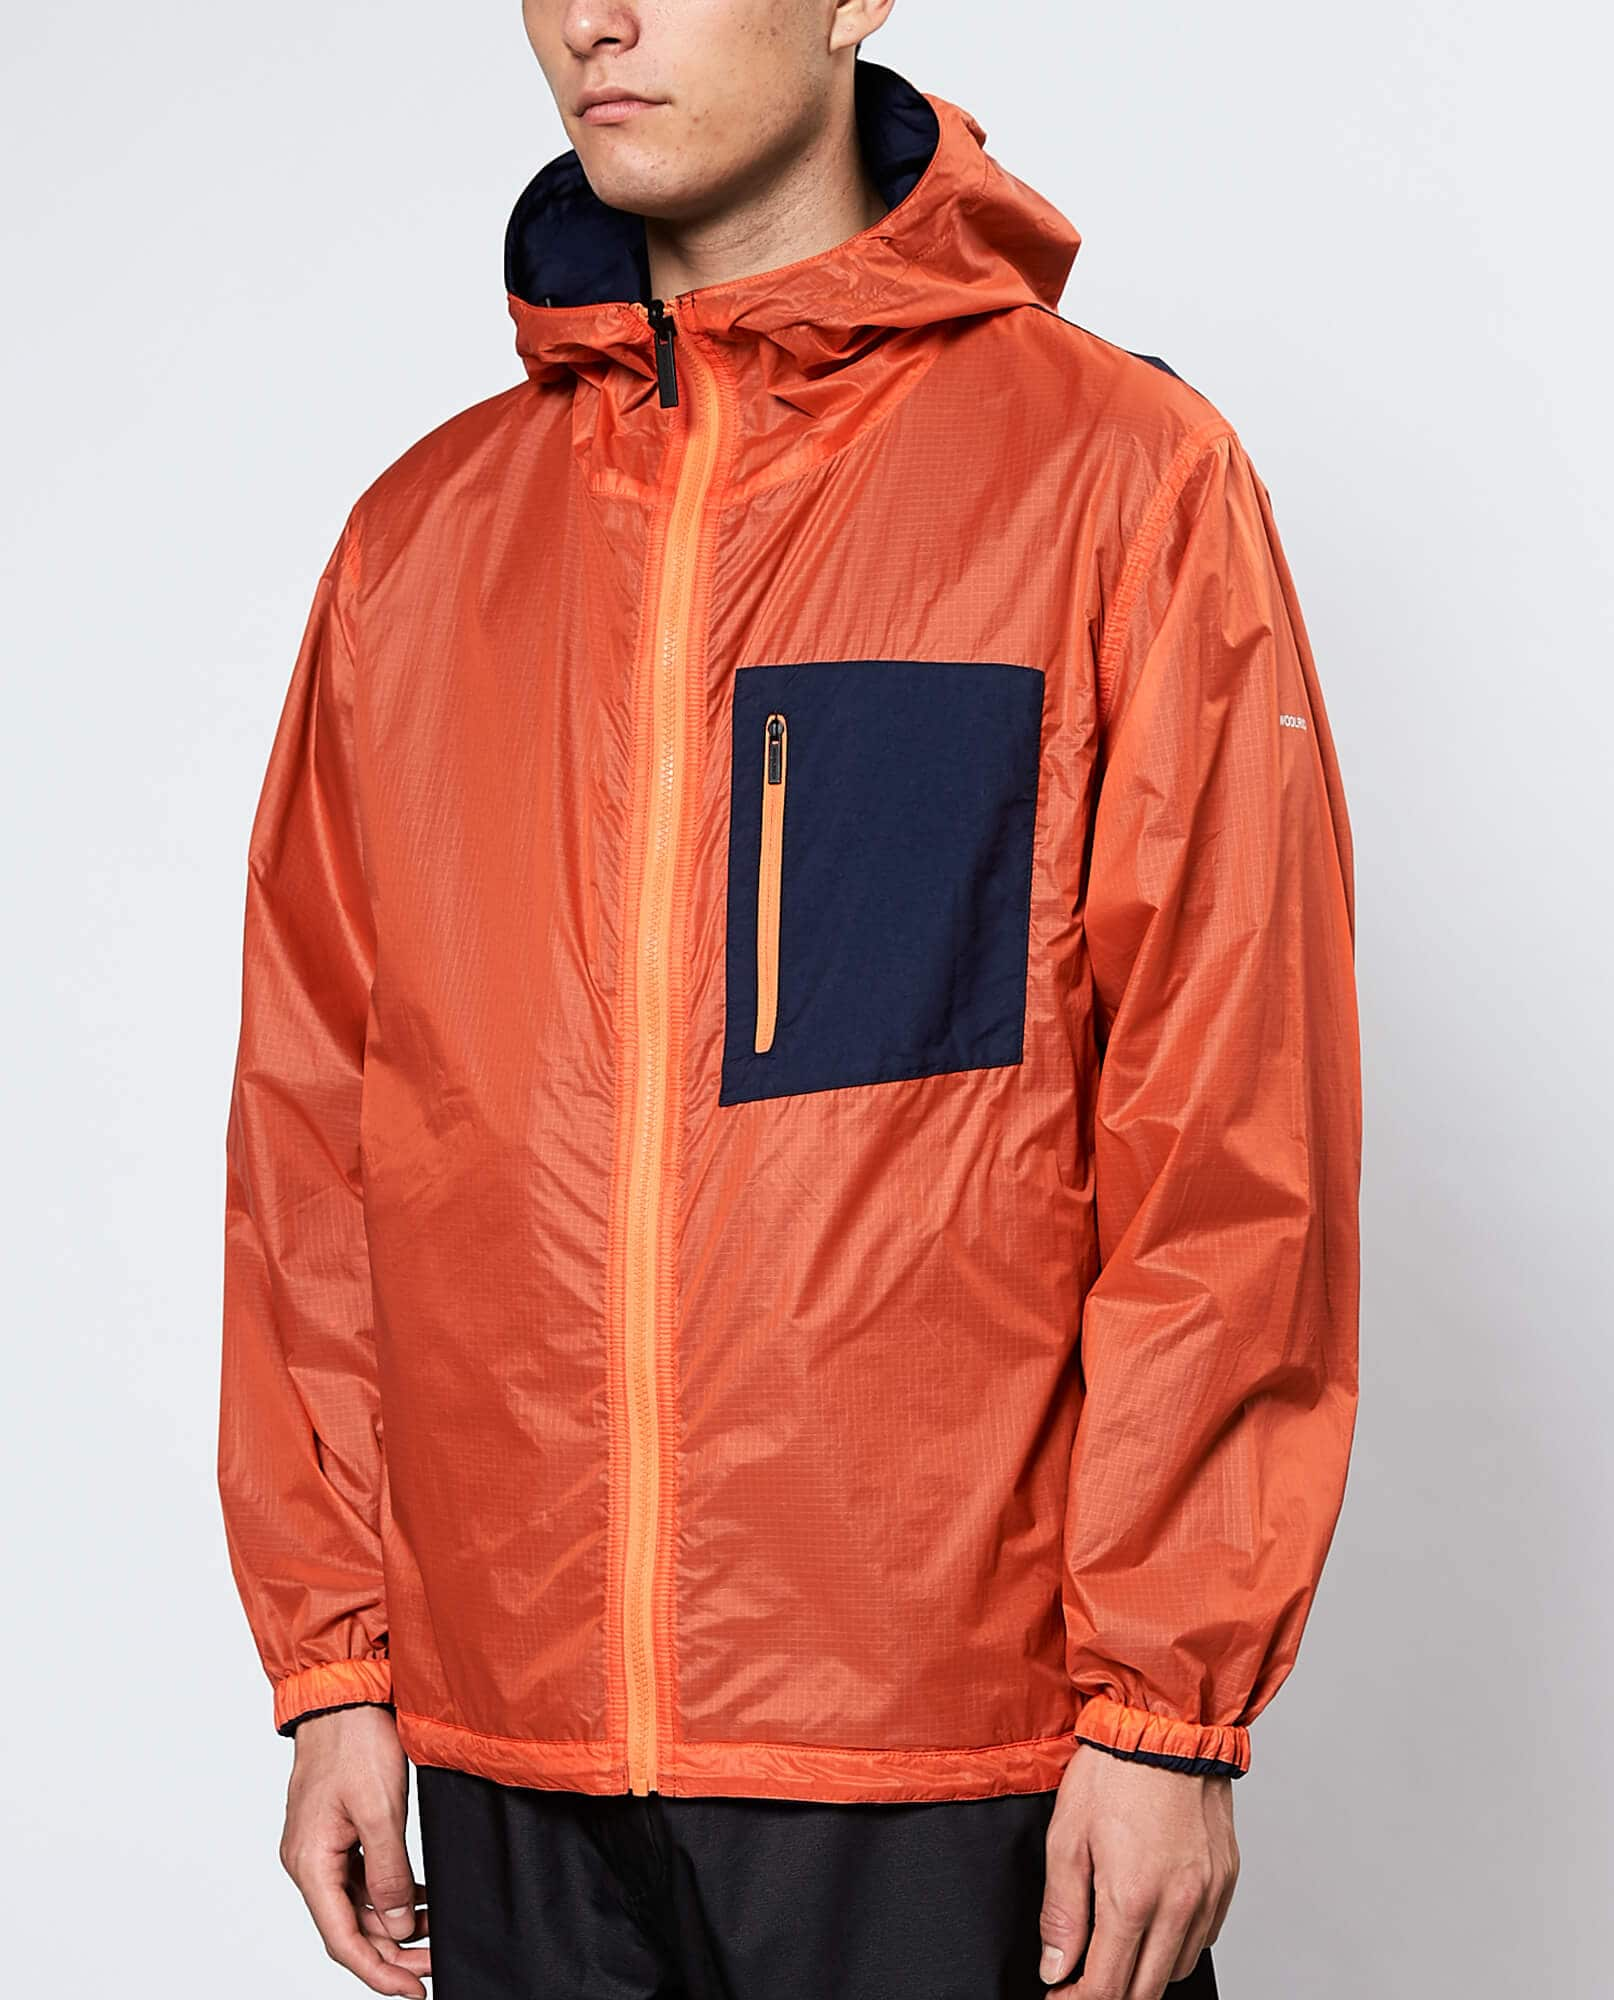 GREEN CYCLE  REVERSIBLE JACKET